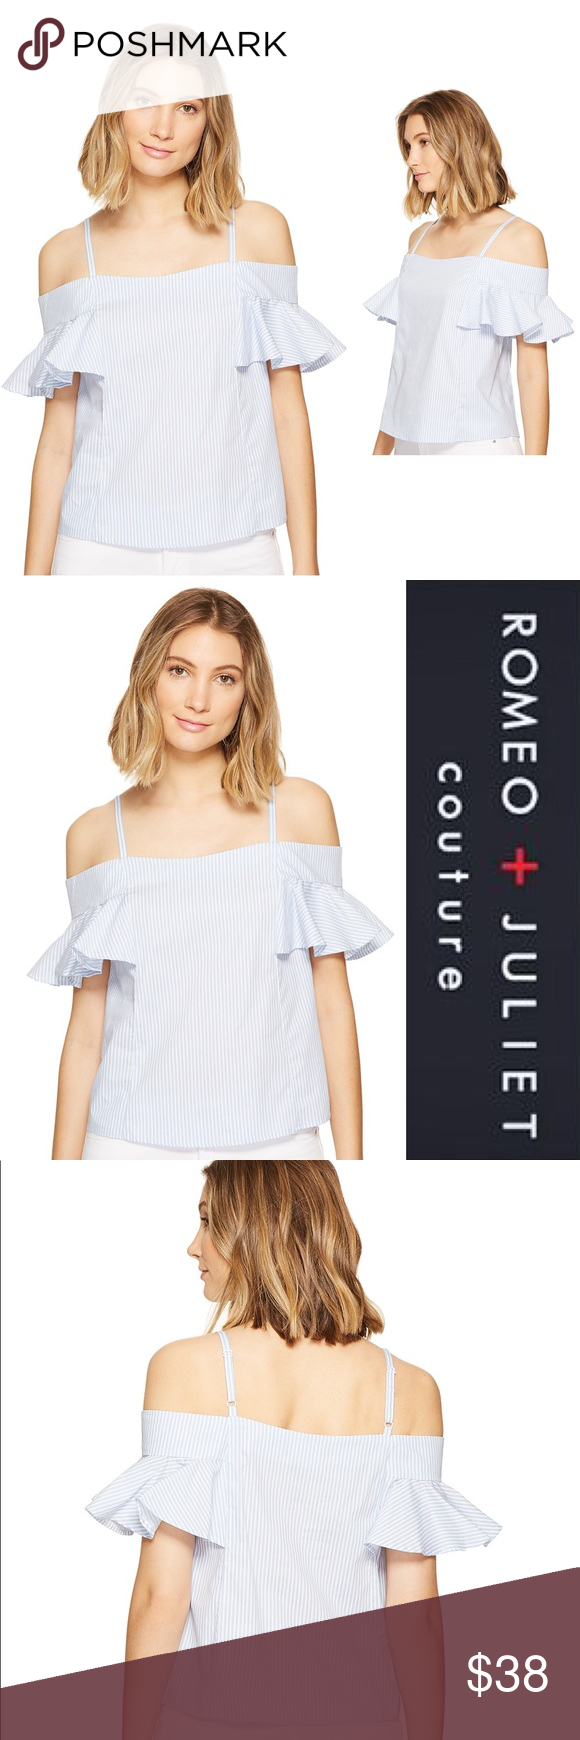 e3ae9a86f856 SALE💜Romeo & Juliet Couture Cold Shoulde Top Brand new with tags. Super